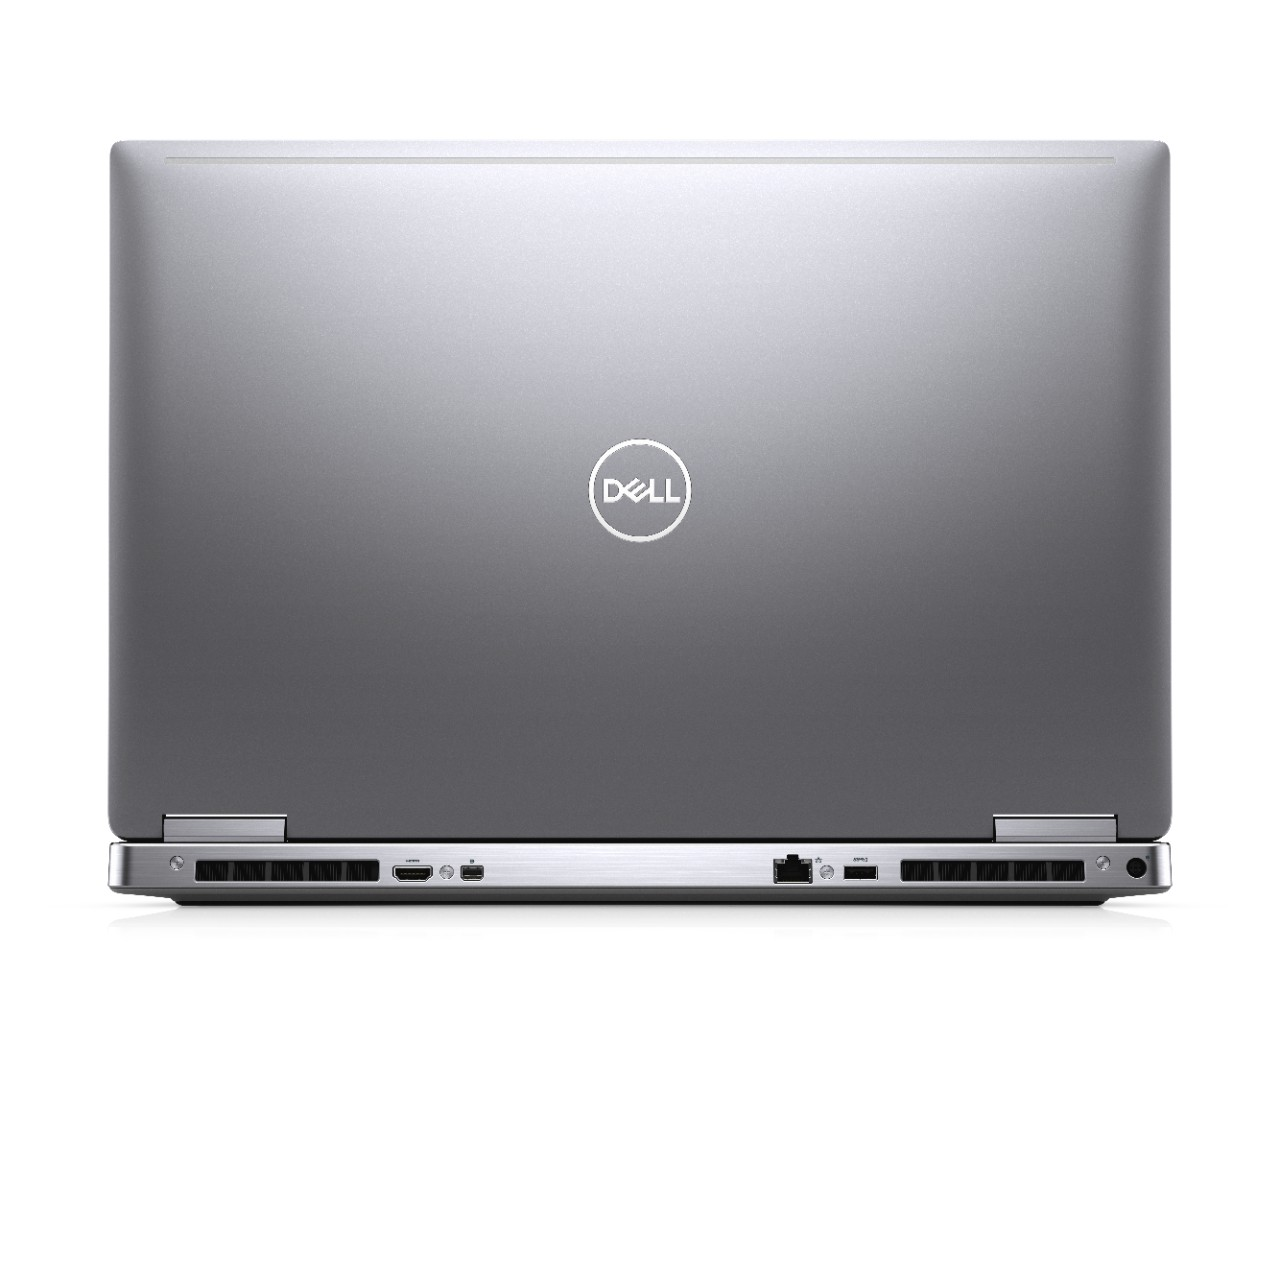 Laptop DELL Precision M7740 17,3 FHD E-2286M 64GB 512GB SSD RTX5000 BK NFC FPR SCR W10P 3YProSupport